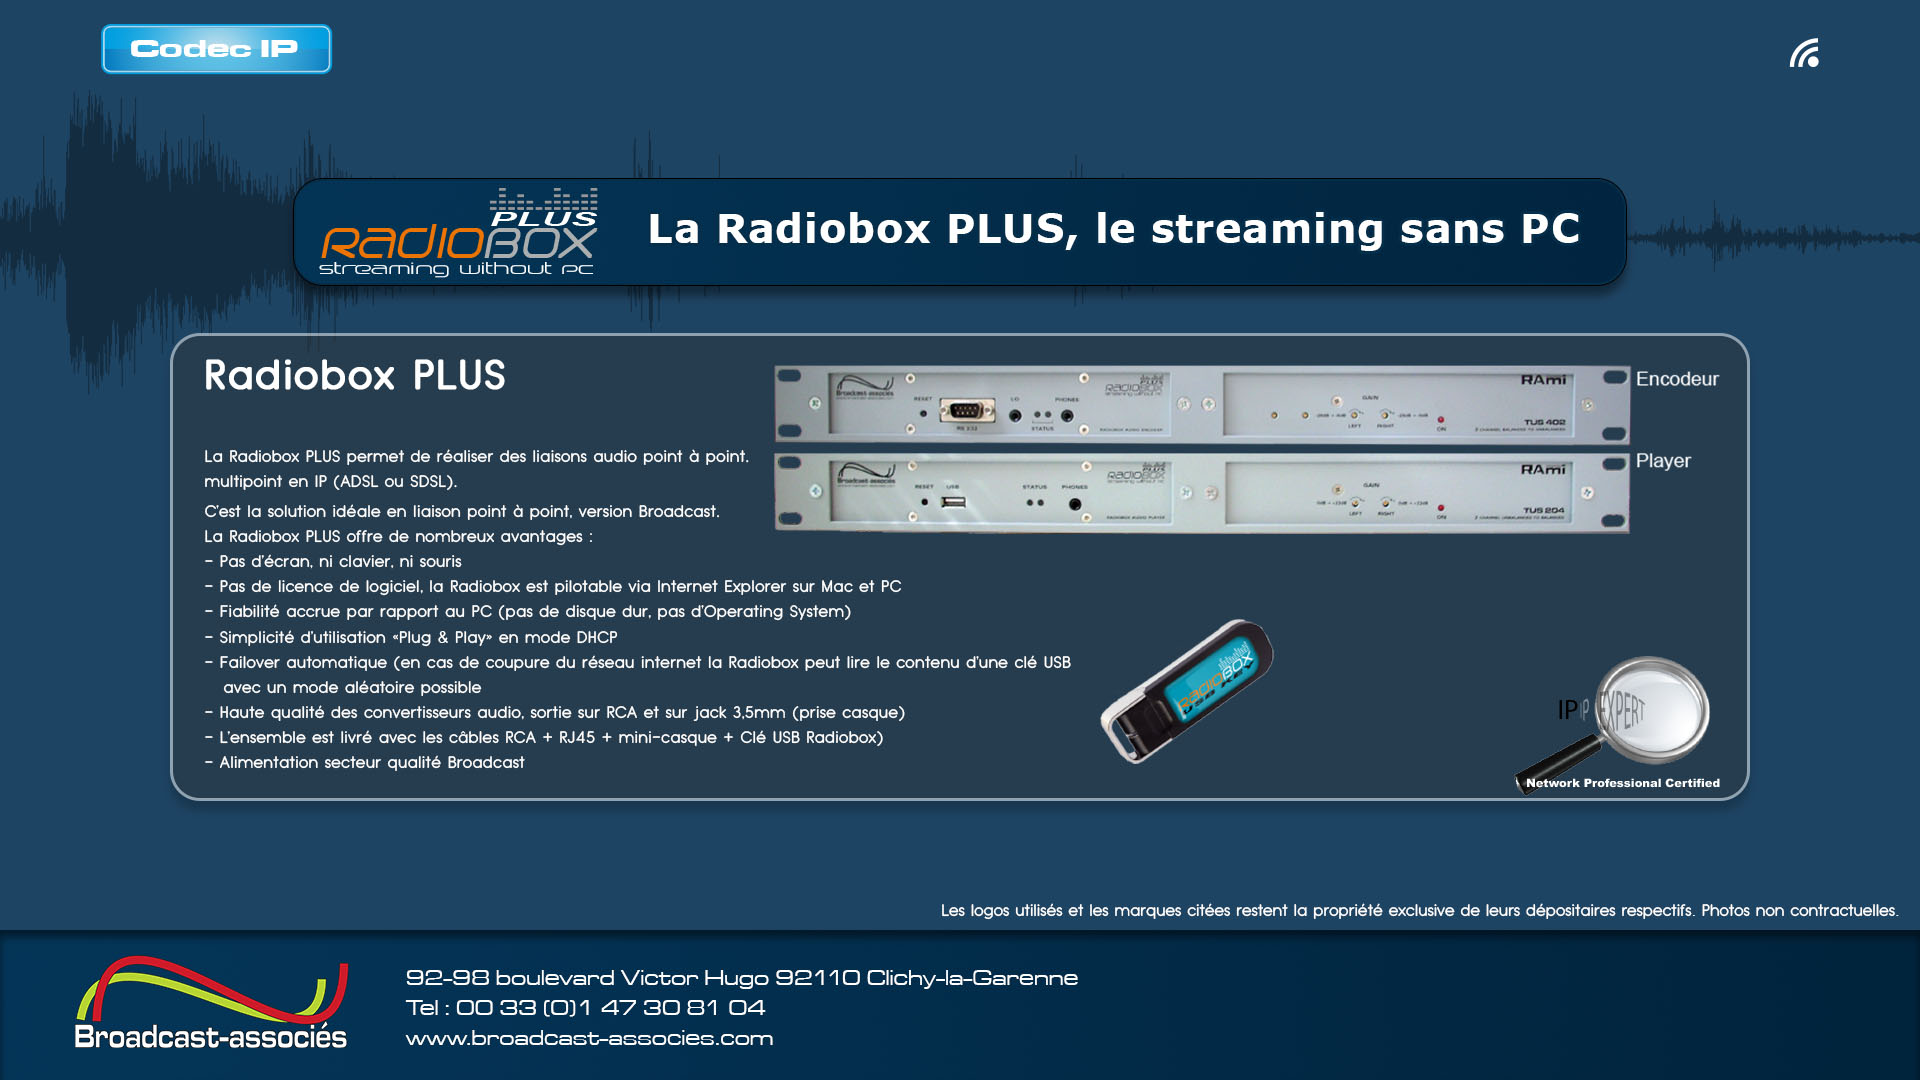 radiobox Plus